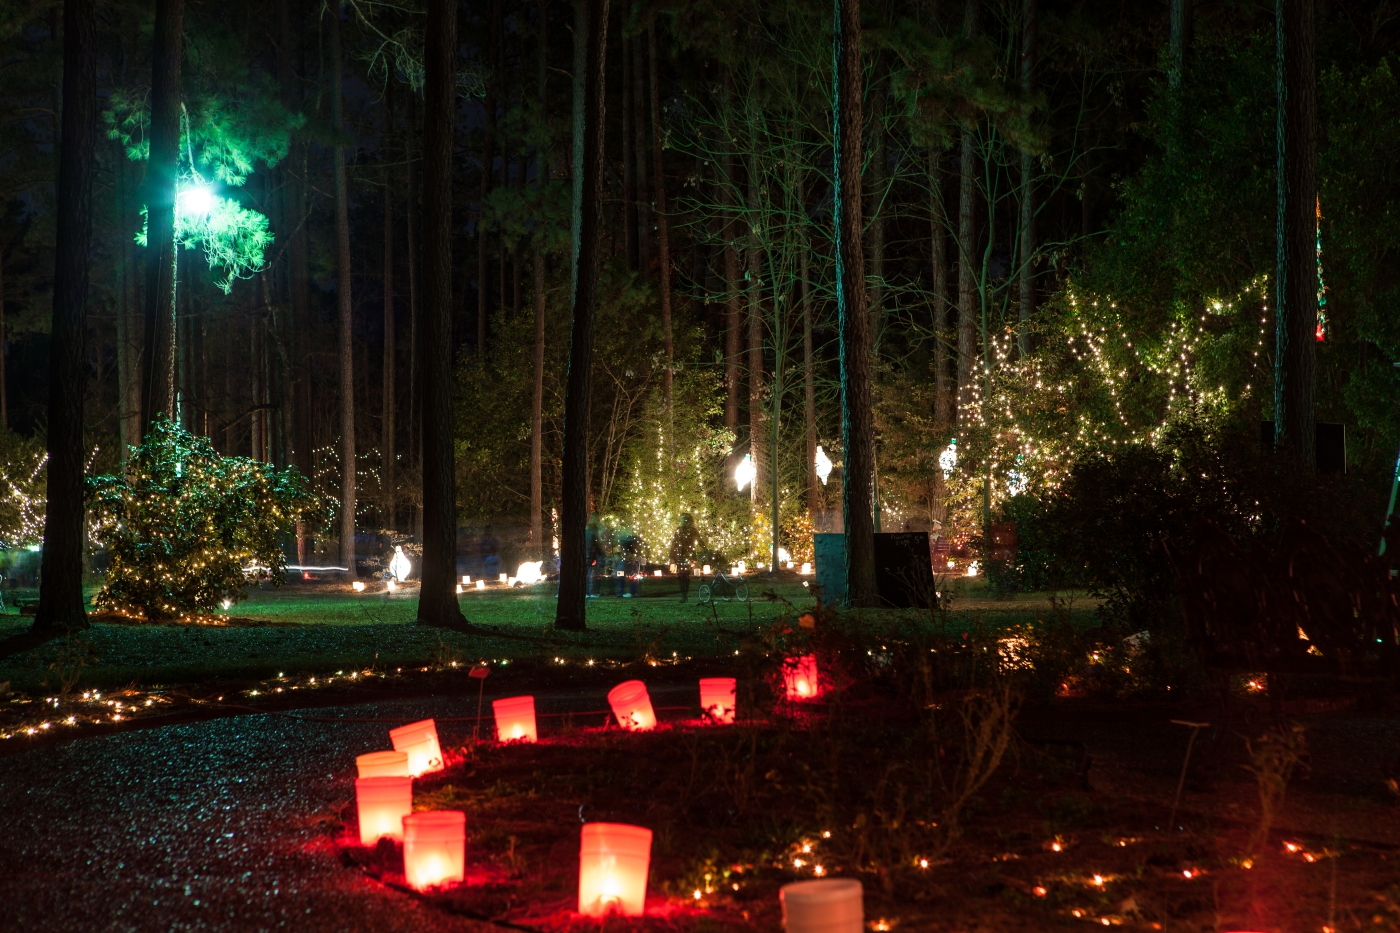 Each Winter, the gardens of the American Rose Society are decorated with thousands of twinkling Christmas lights during an event called Christmas in Roseland.